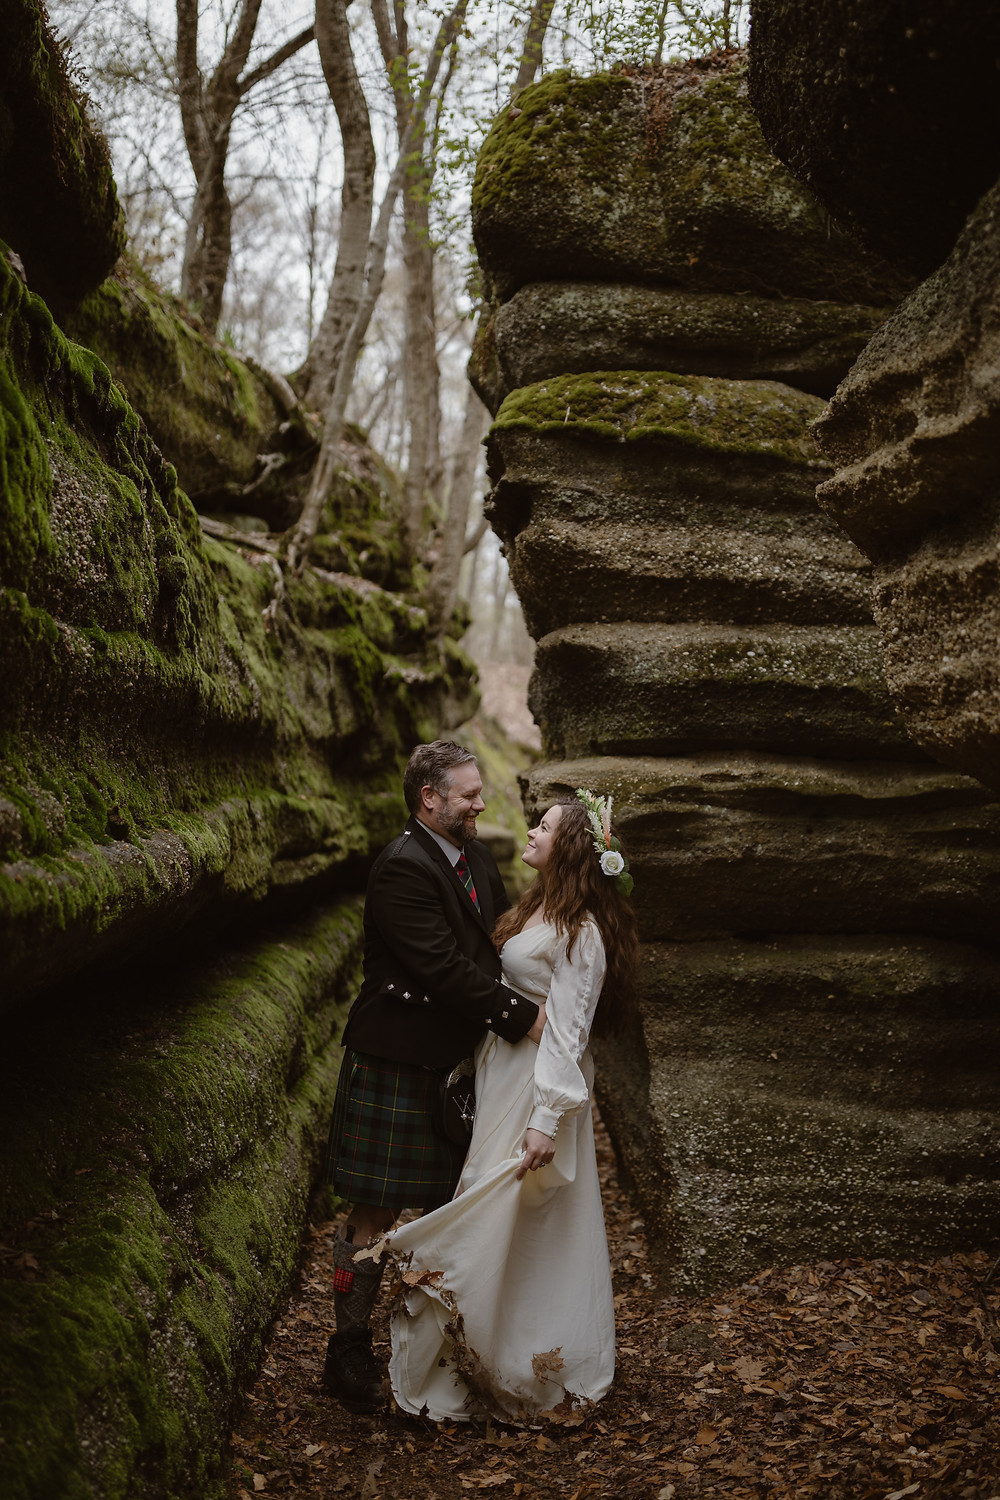 Couple on their elopement day in Ohio surrounded by the ledges of nelson Kennedy ledges state park.